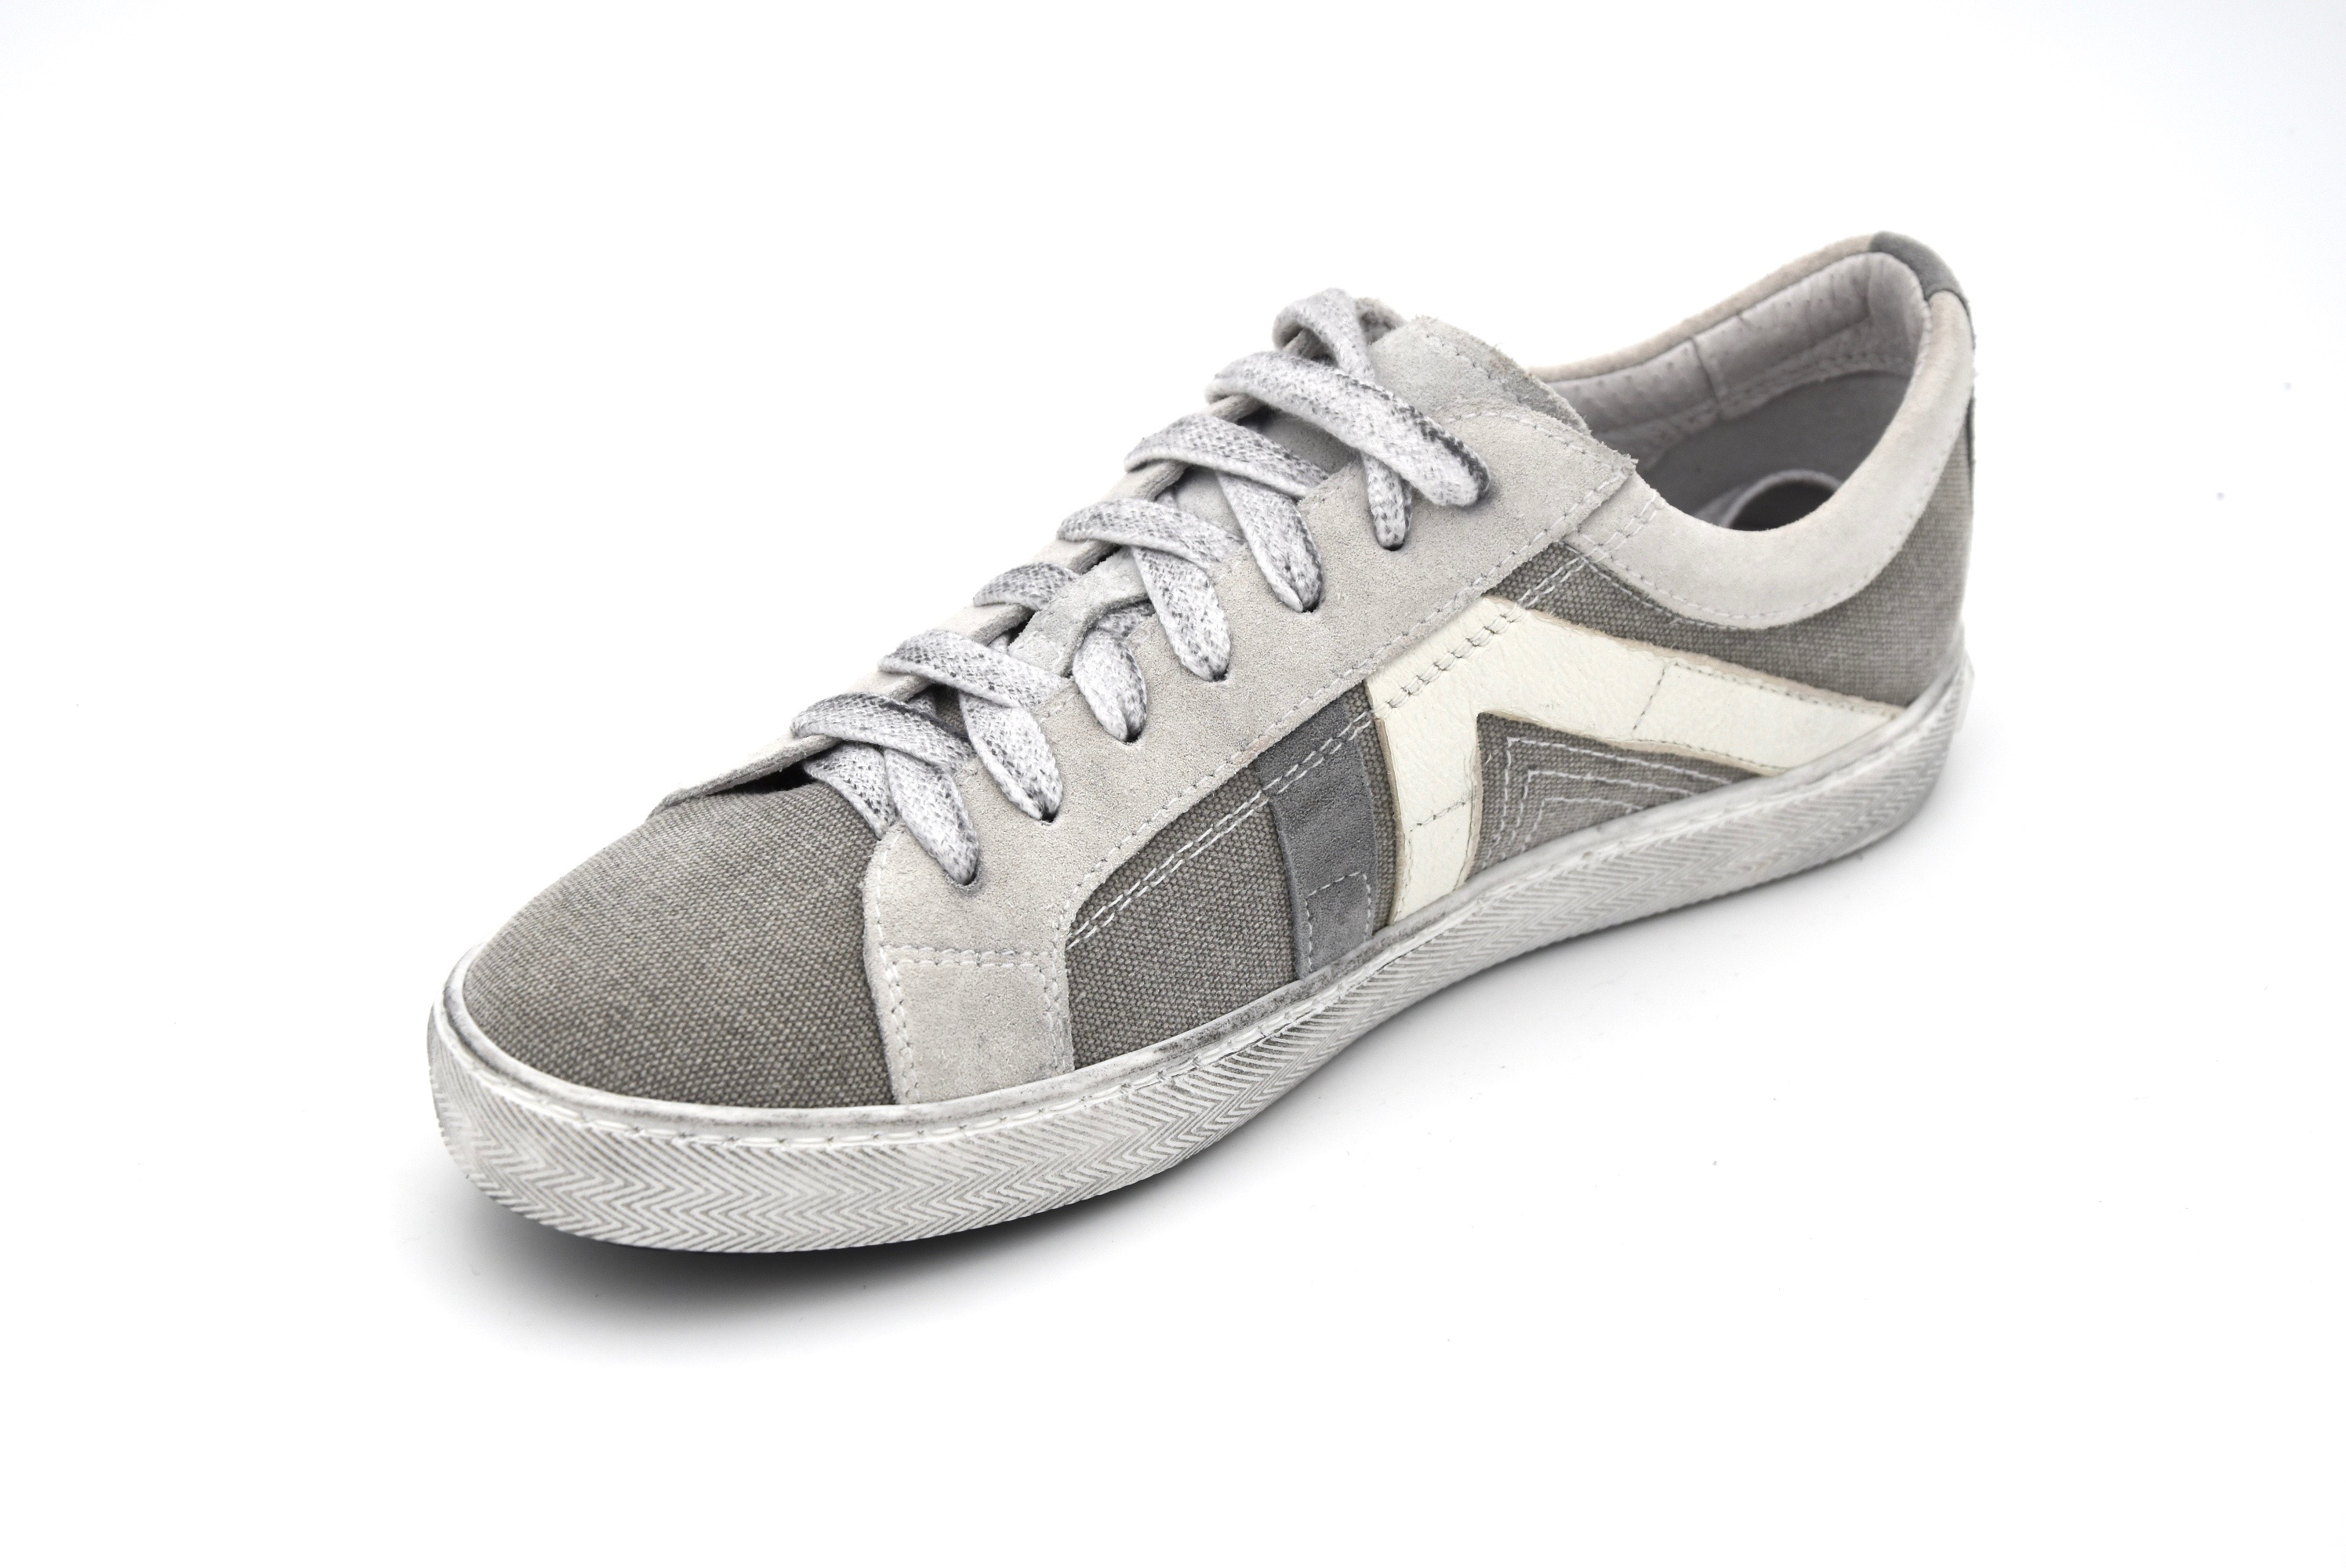 NERO CANVAS GIARDINI WOMAN CASUAL SNEAKER Chaussures FREE TIME CANVAS NERO CODE P207180D 378cc0